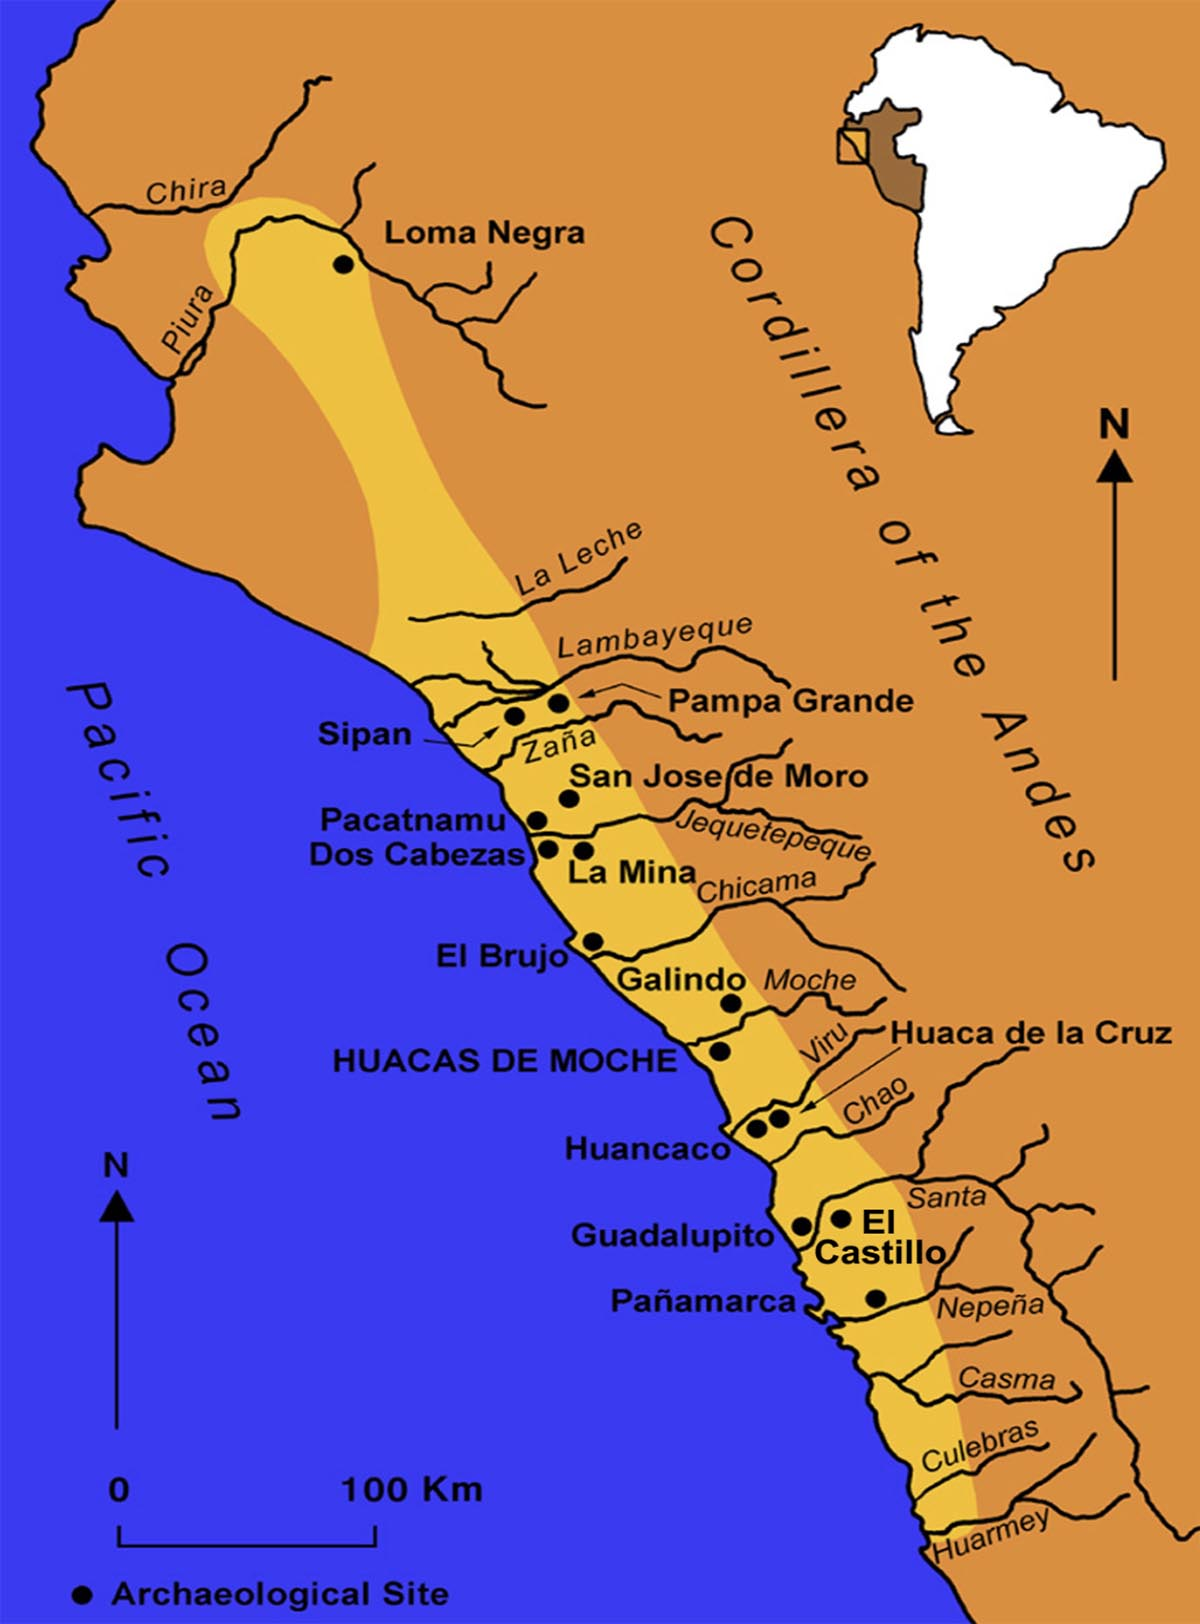 A map of the Moche people's location in Peru along the Pacific coast.